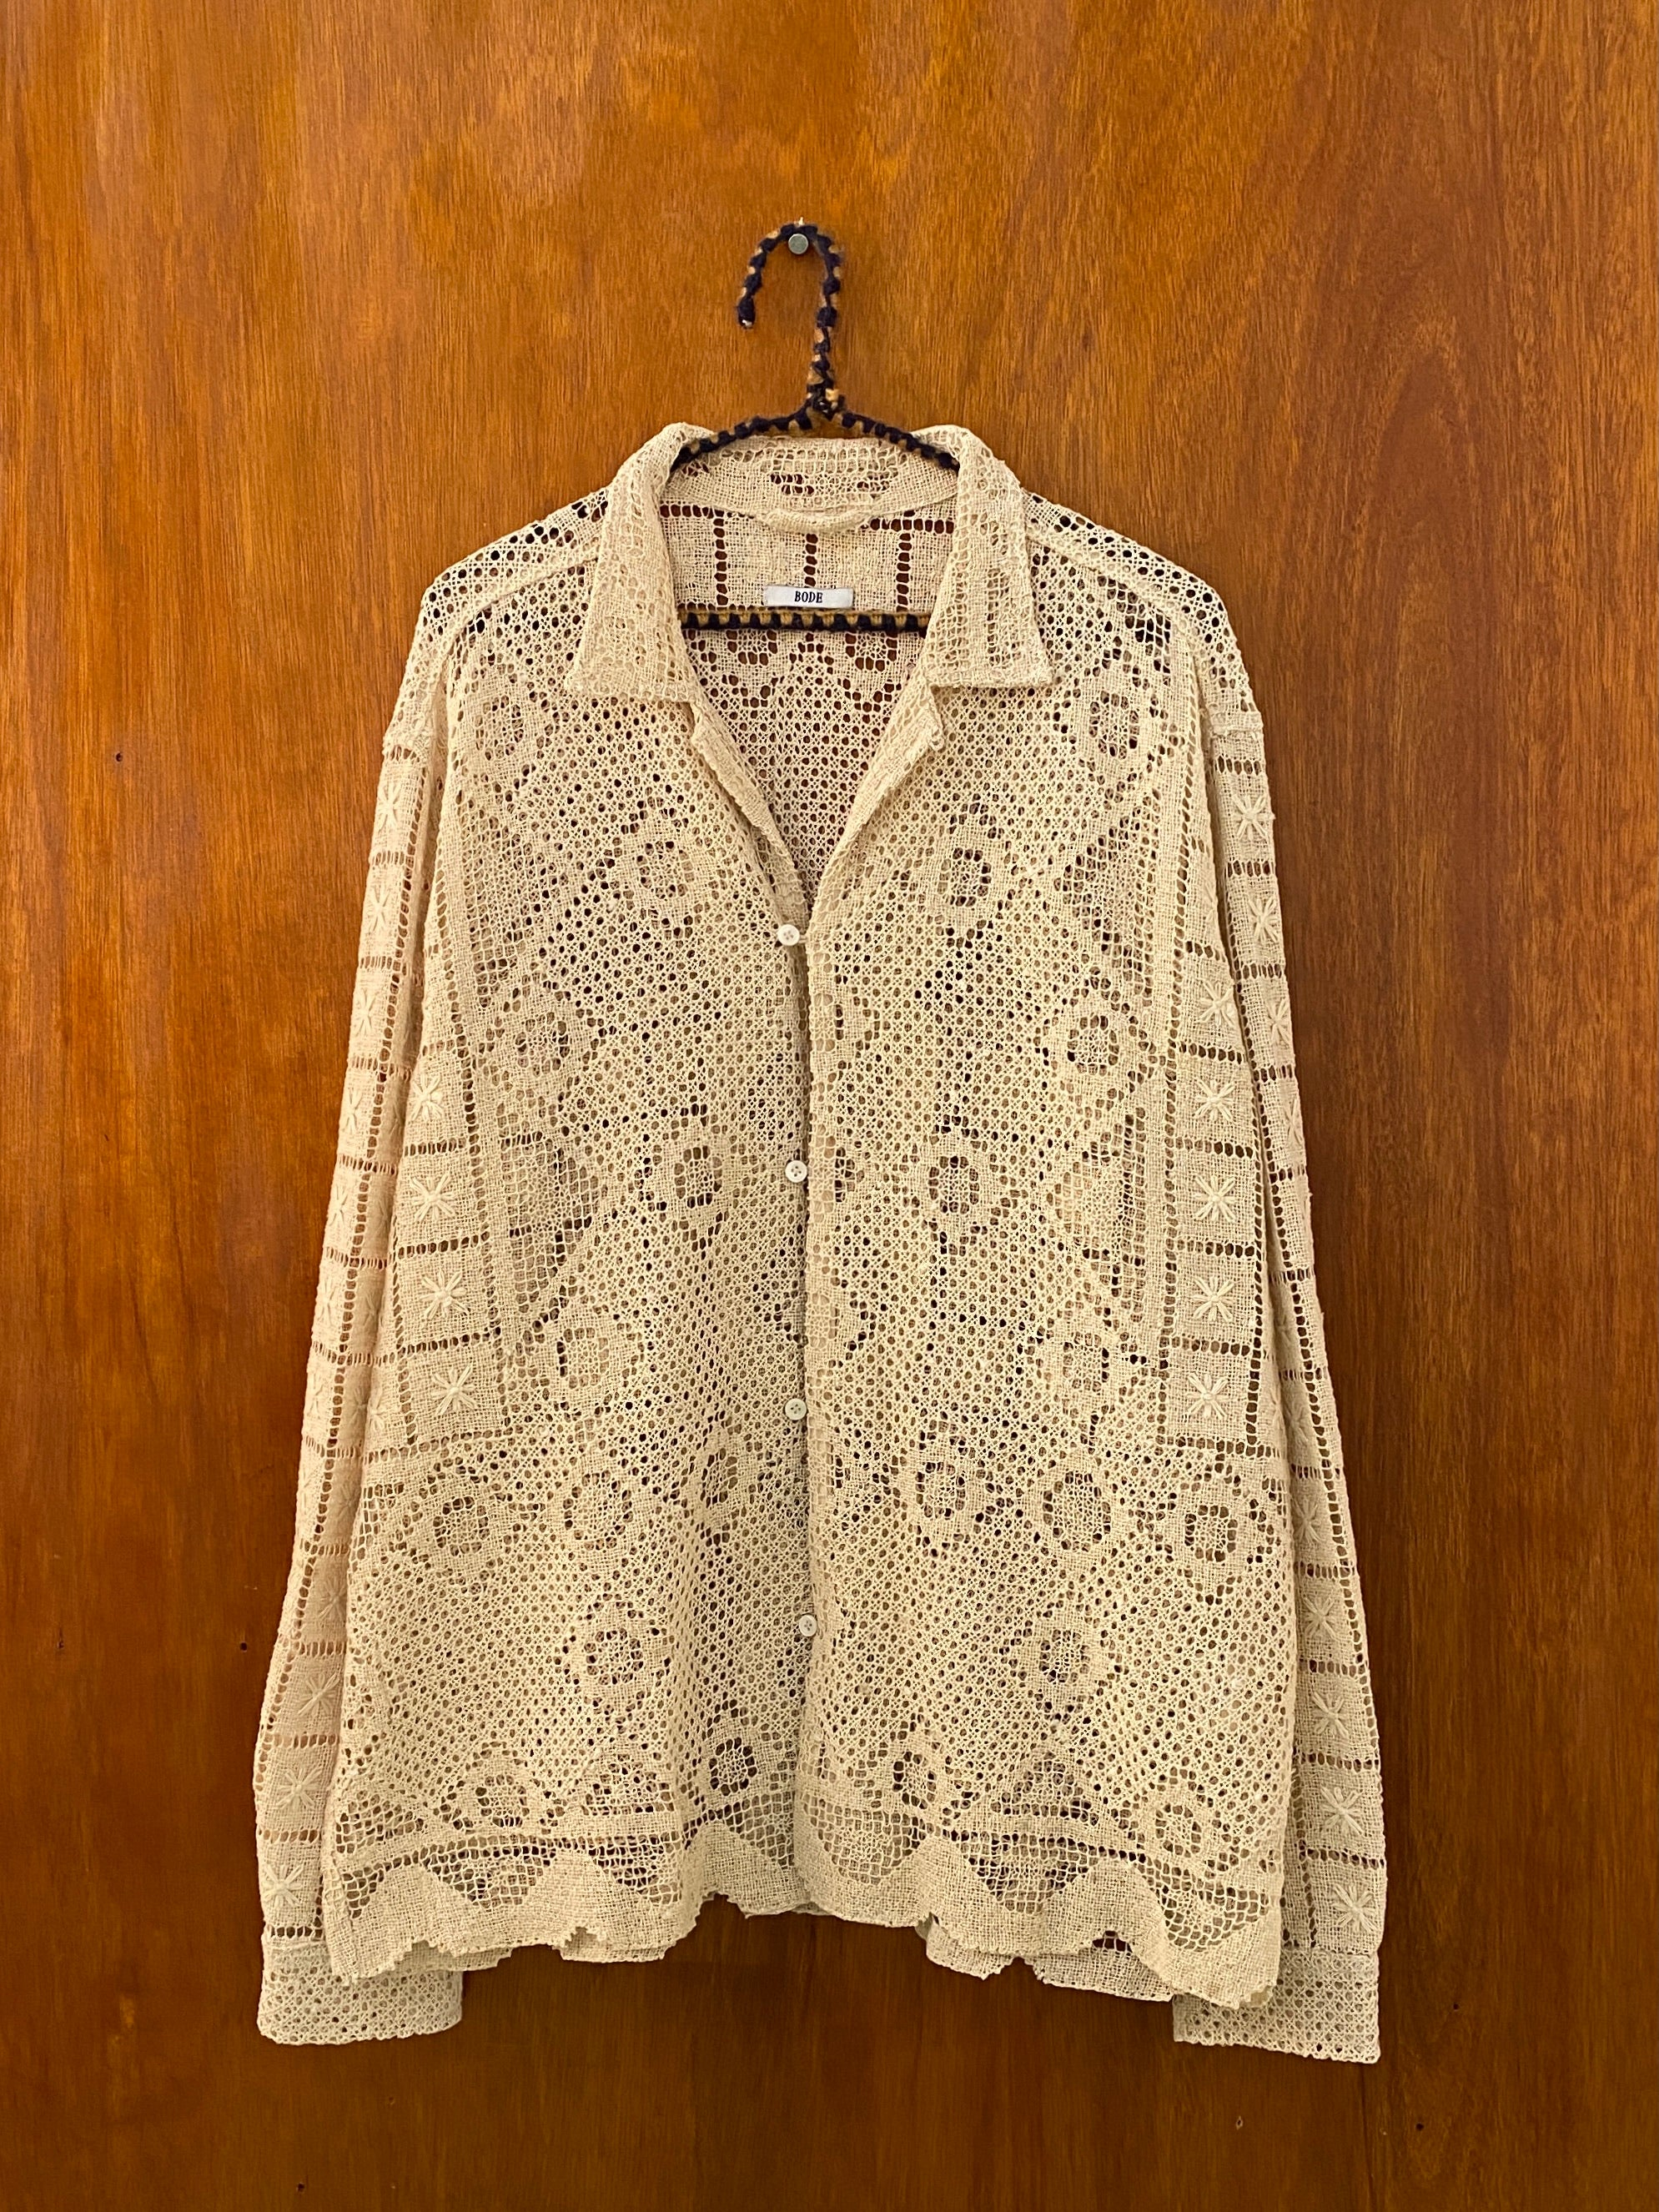 Hex Shell Lace Shirt - XL/XXL